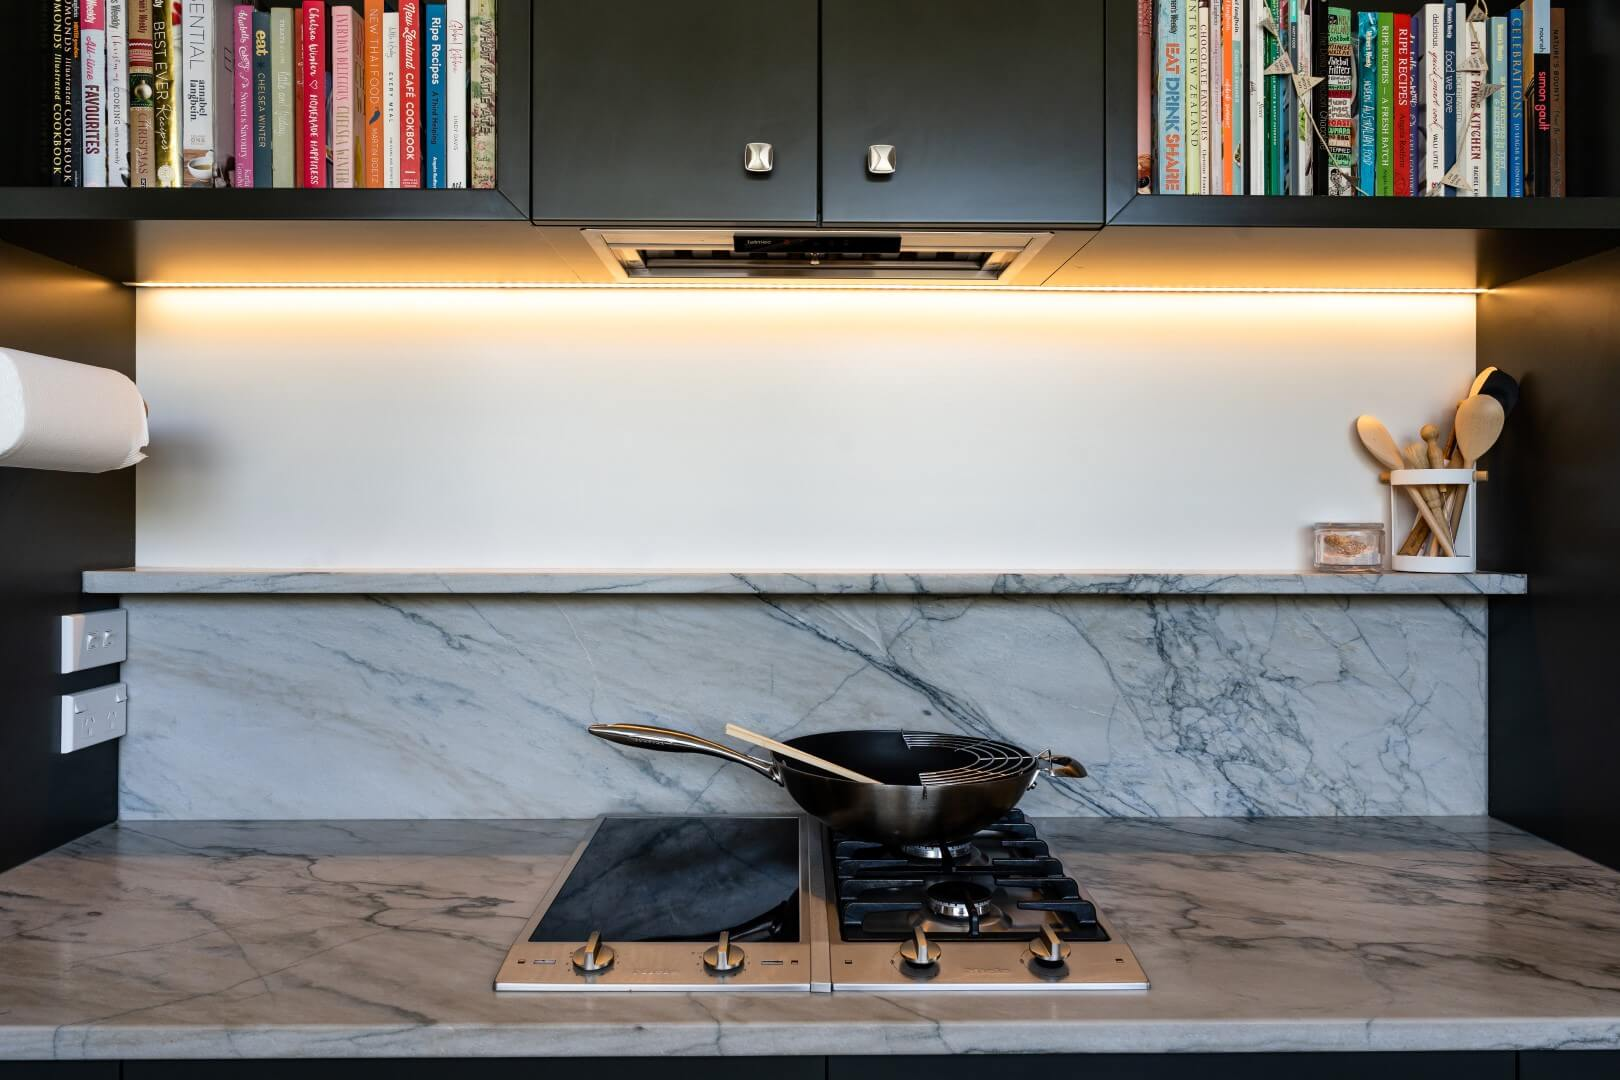 scullery-hobs-gas-cook-books-stone-splashback-arcline-architecture